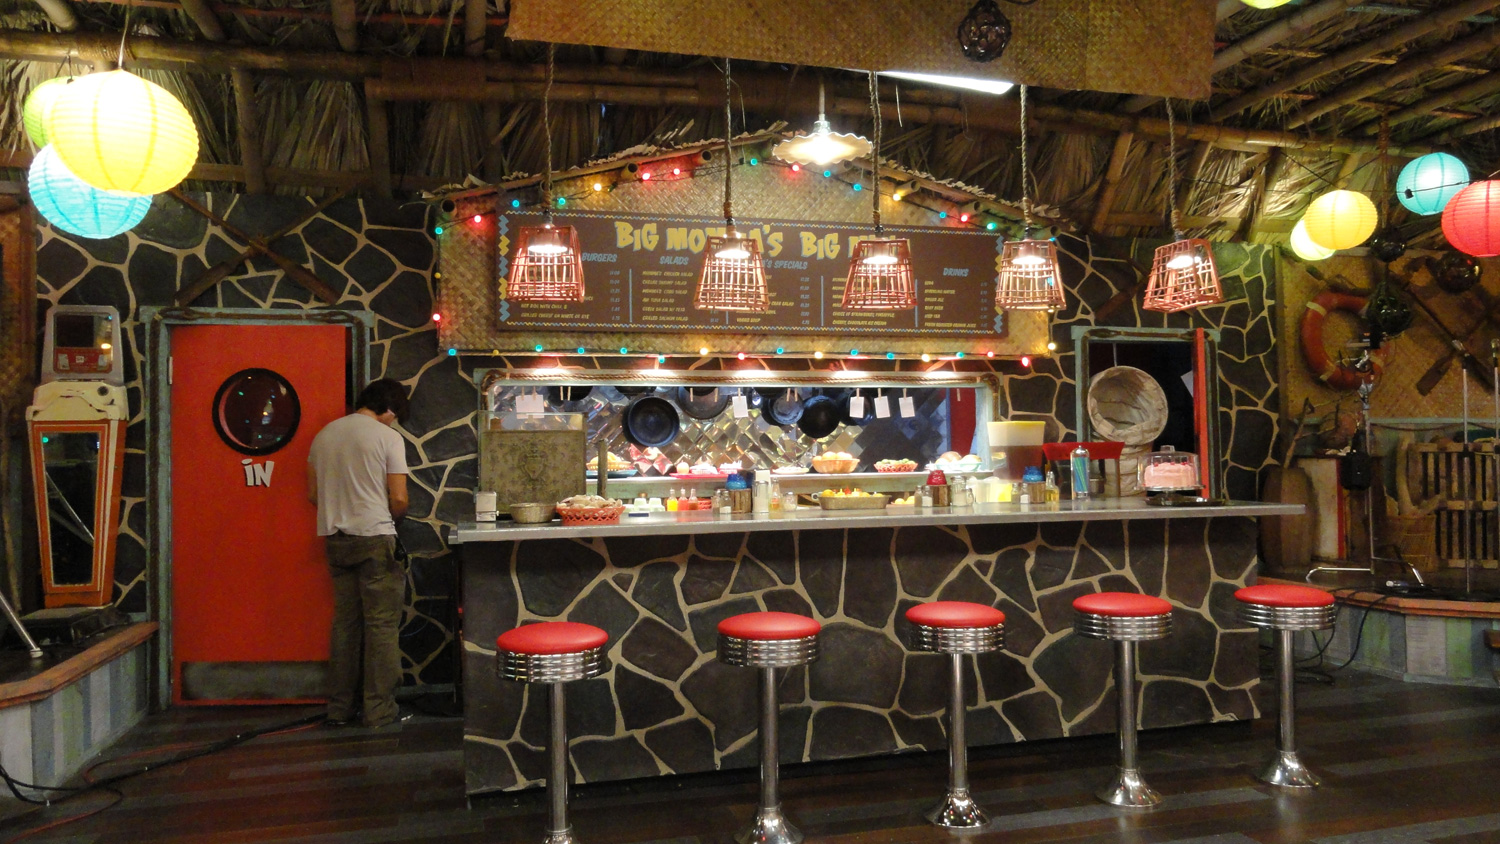 A detail shot of the kooky lava lunch counter and kitchen/pass through in Big Momma's interior.